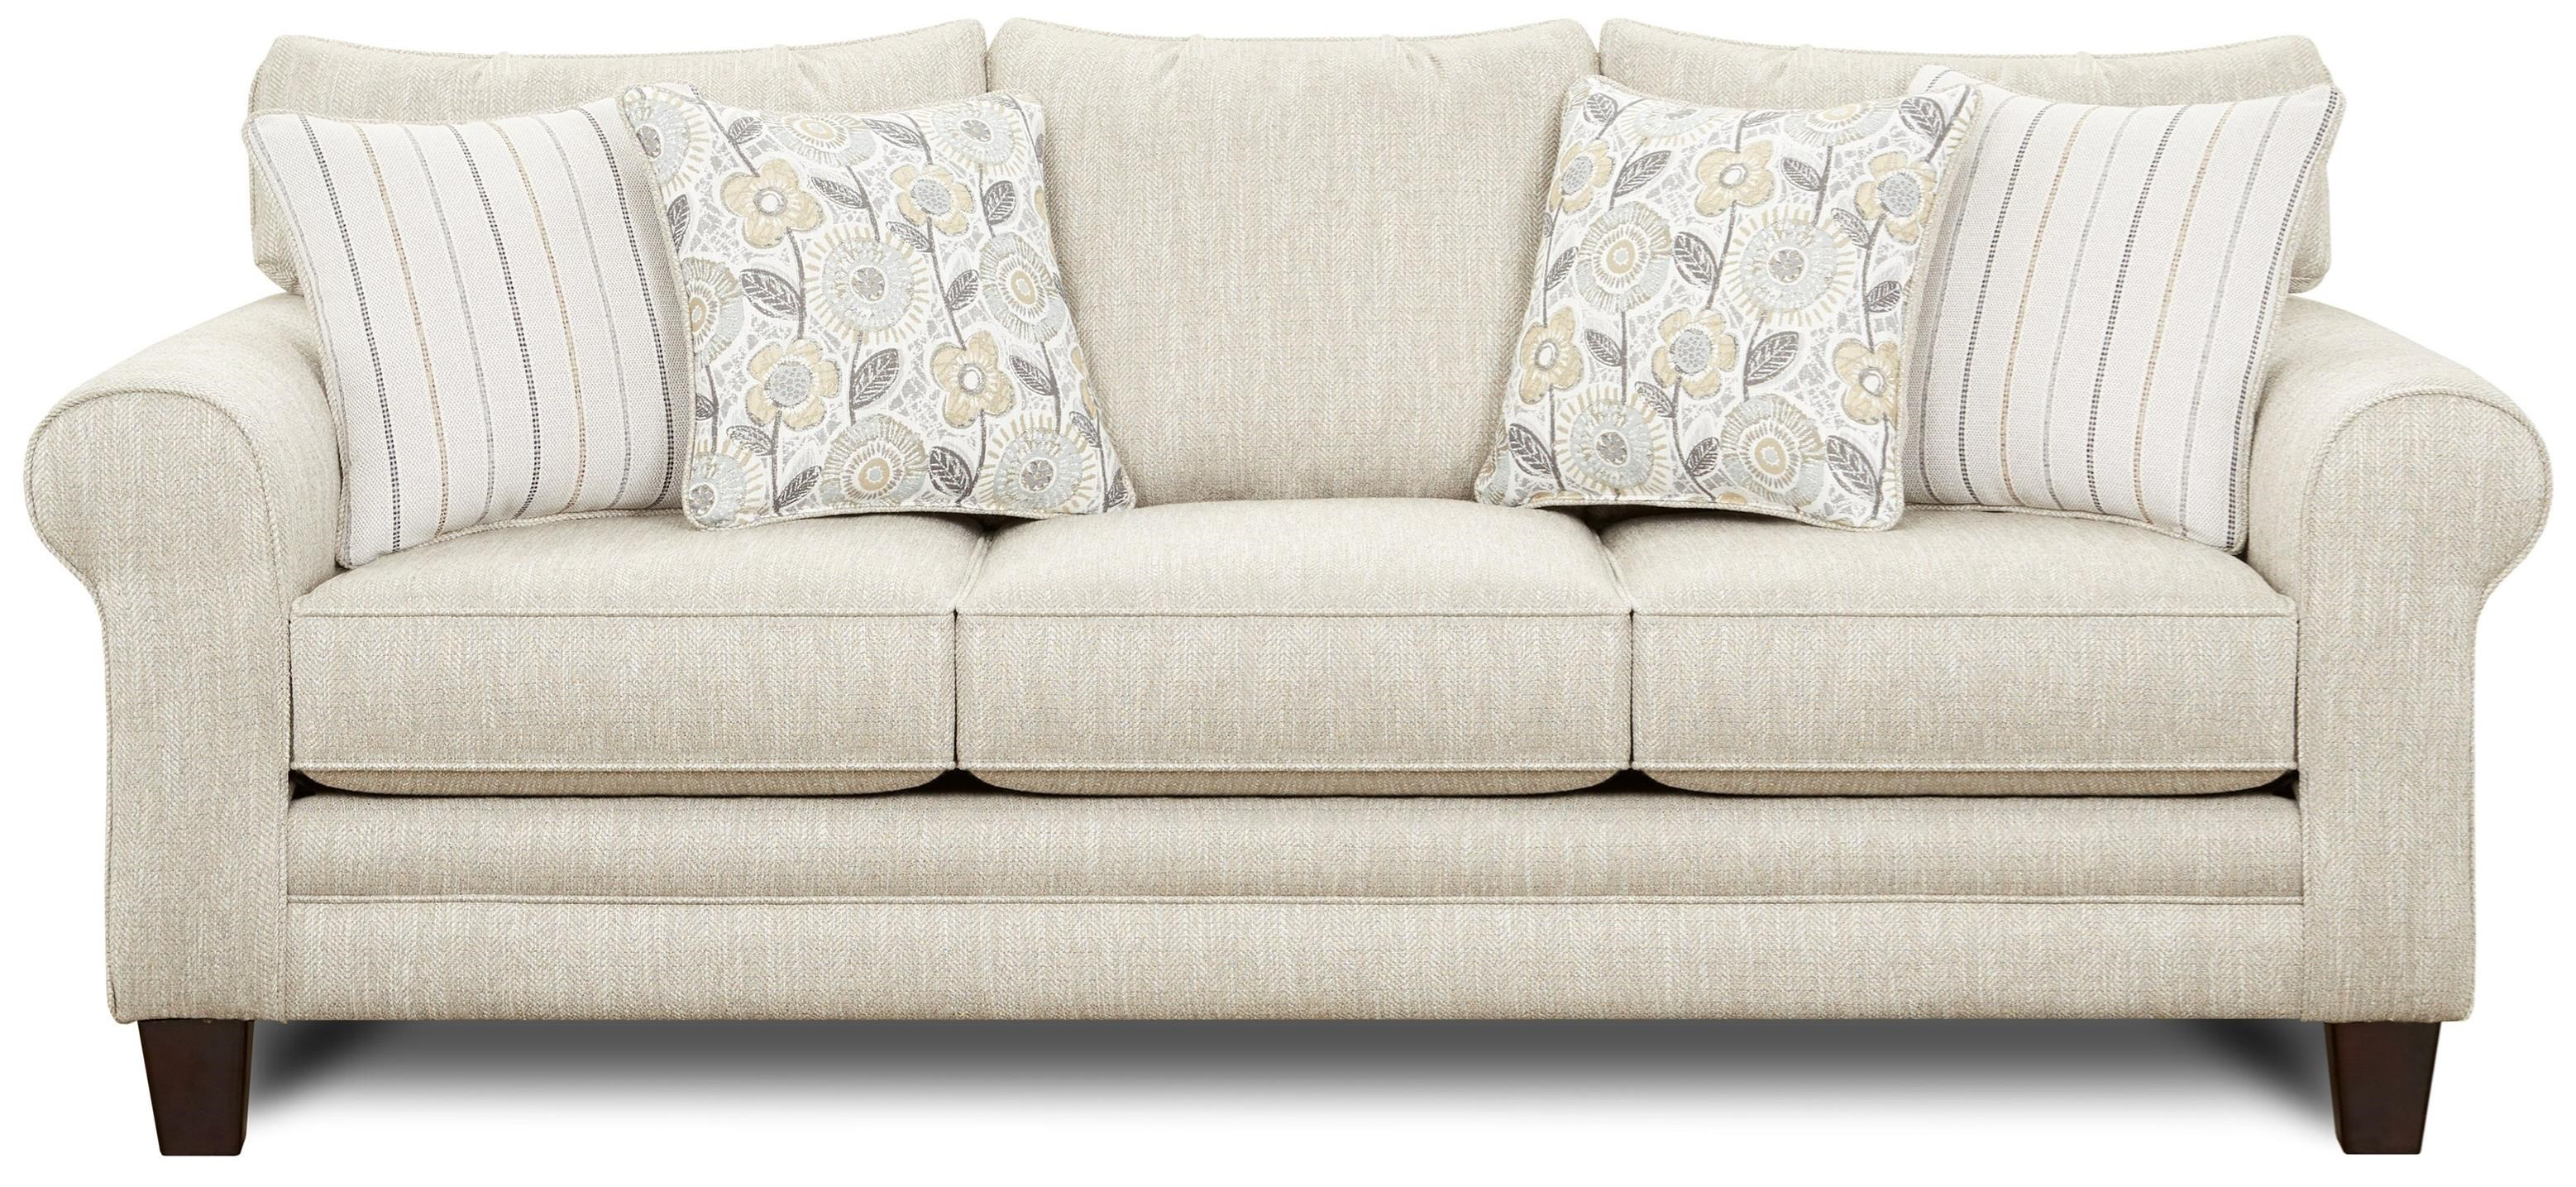 1140 Sleeper Sofa by Fusion Furniture at Miller Waldrop Furniture and Decor